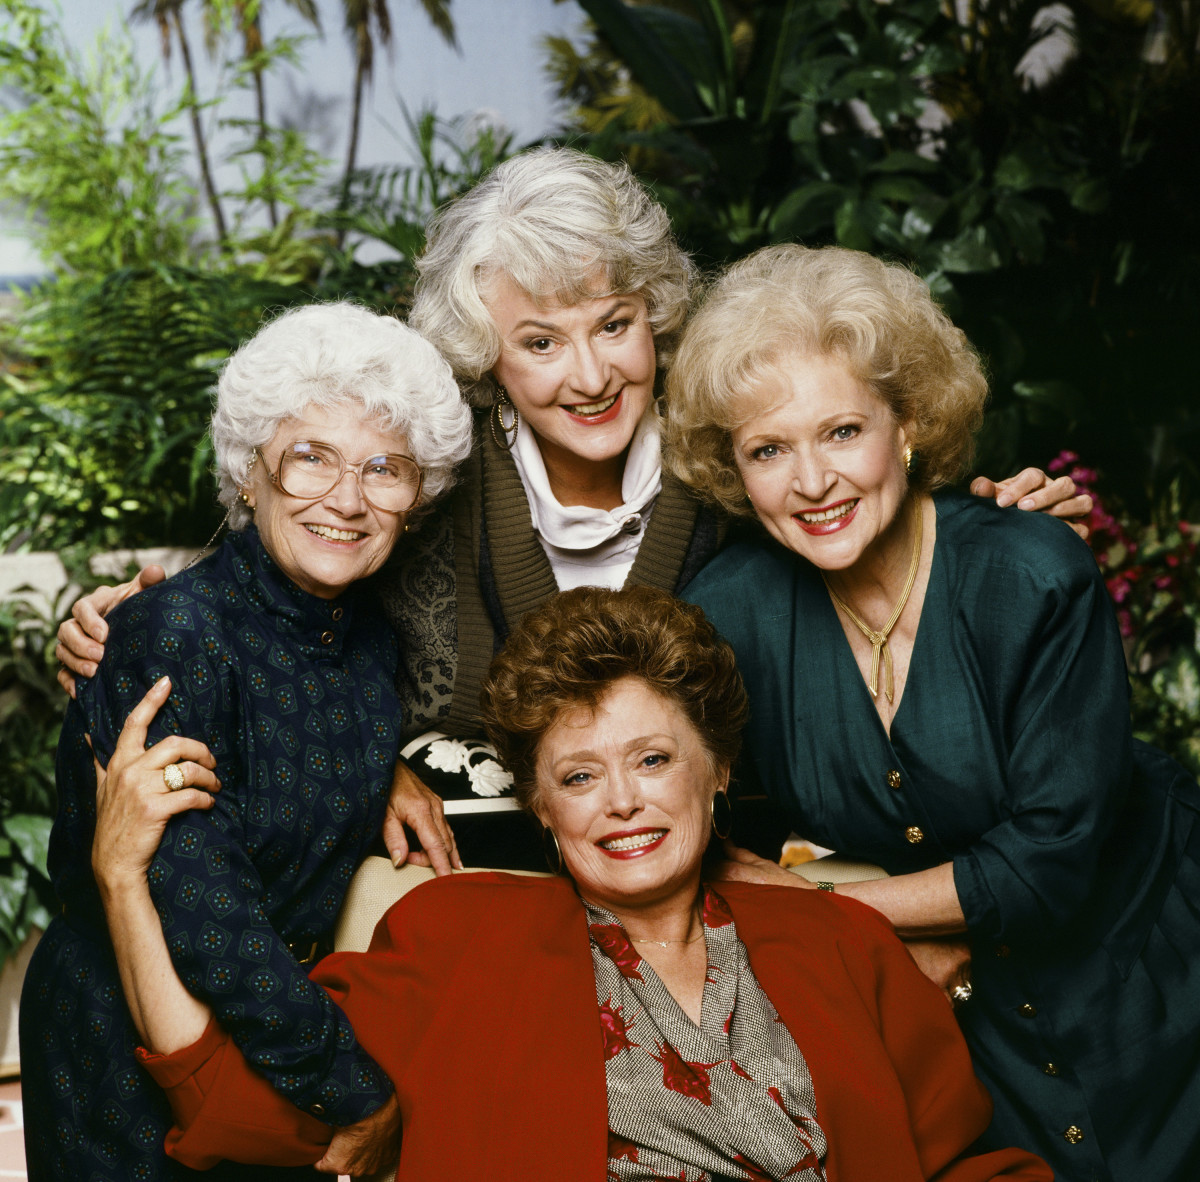 """""""The Golden Girls"""": (clockwise from left) Estelle Getty as Sophia Petrillo, Bea Arthur as Dorothy Petrillo Zbornak, Betty White as Rose Nylund, Rue McClanahan as Blanche Devereaux"""